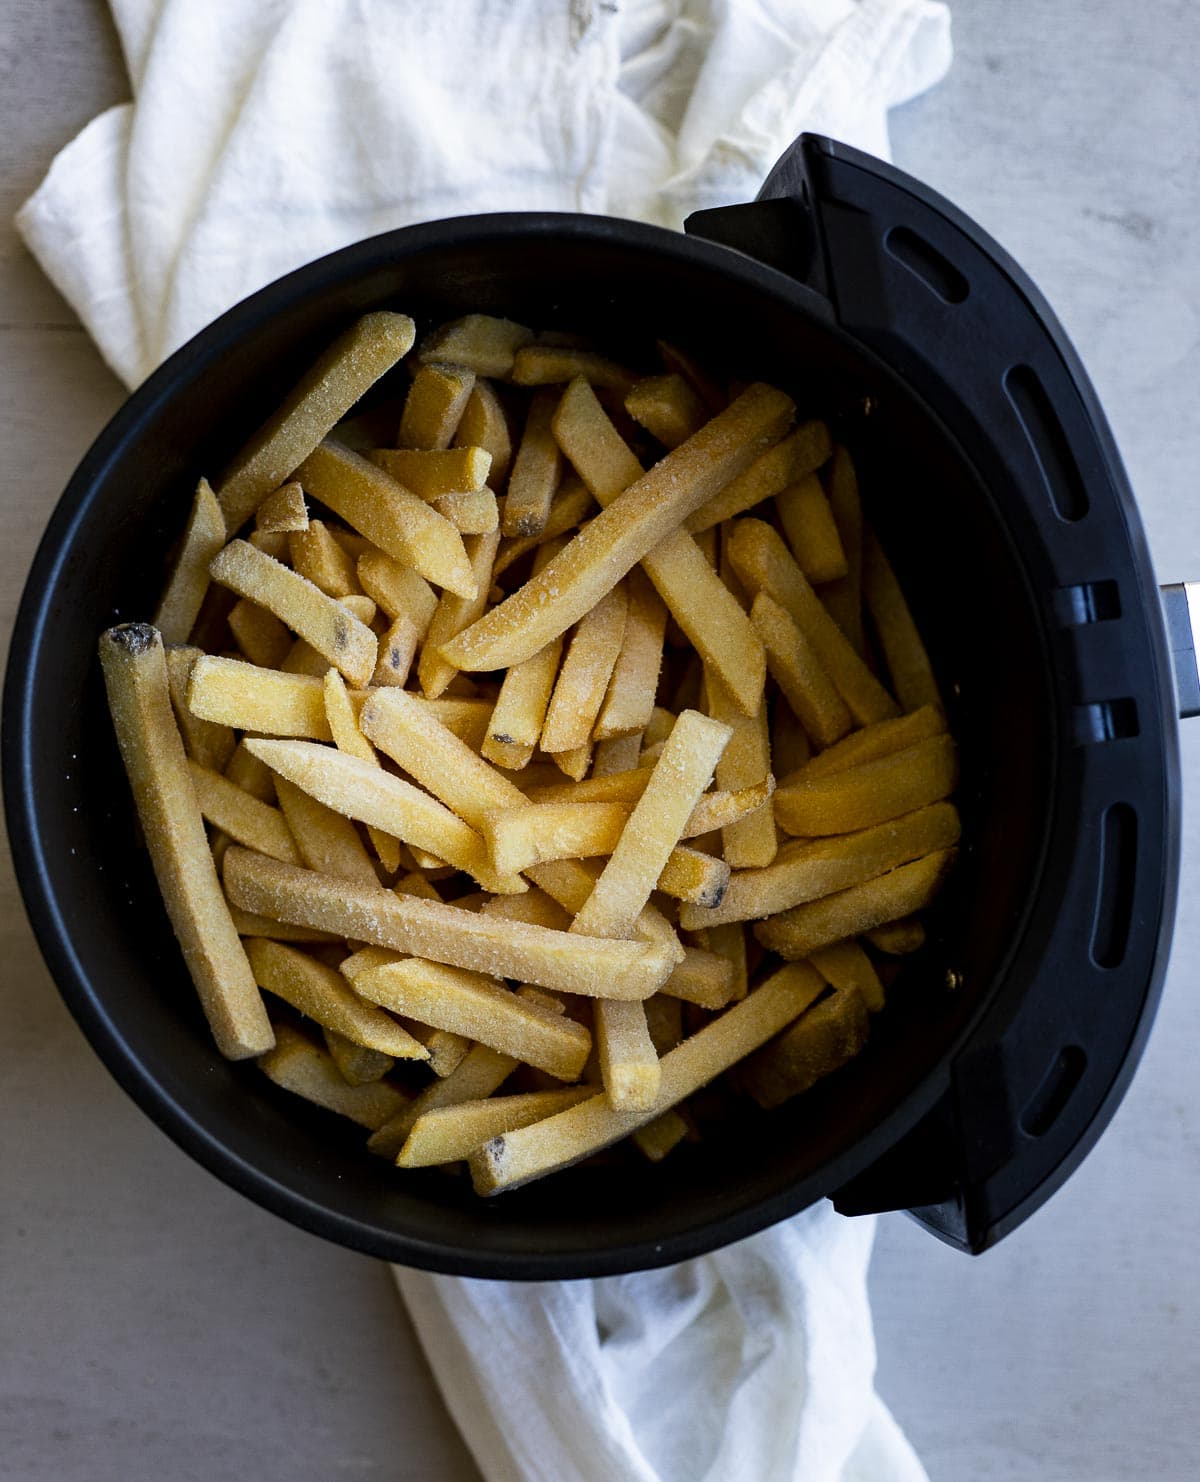 Overhead of frozen french fries in an air fryer basket.